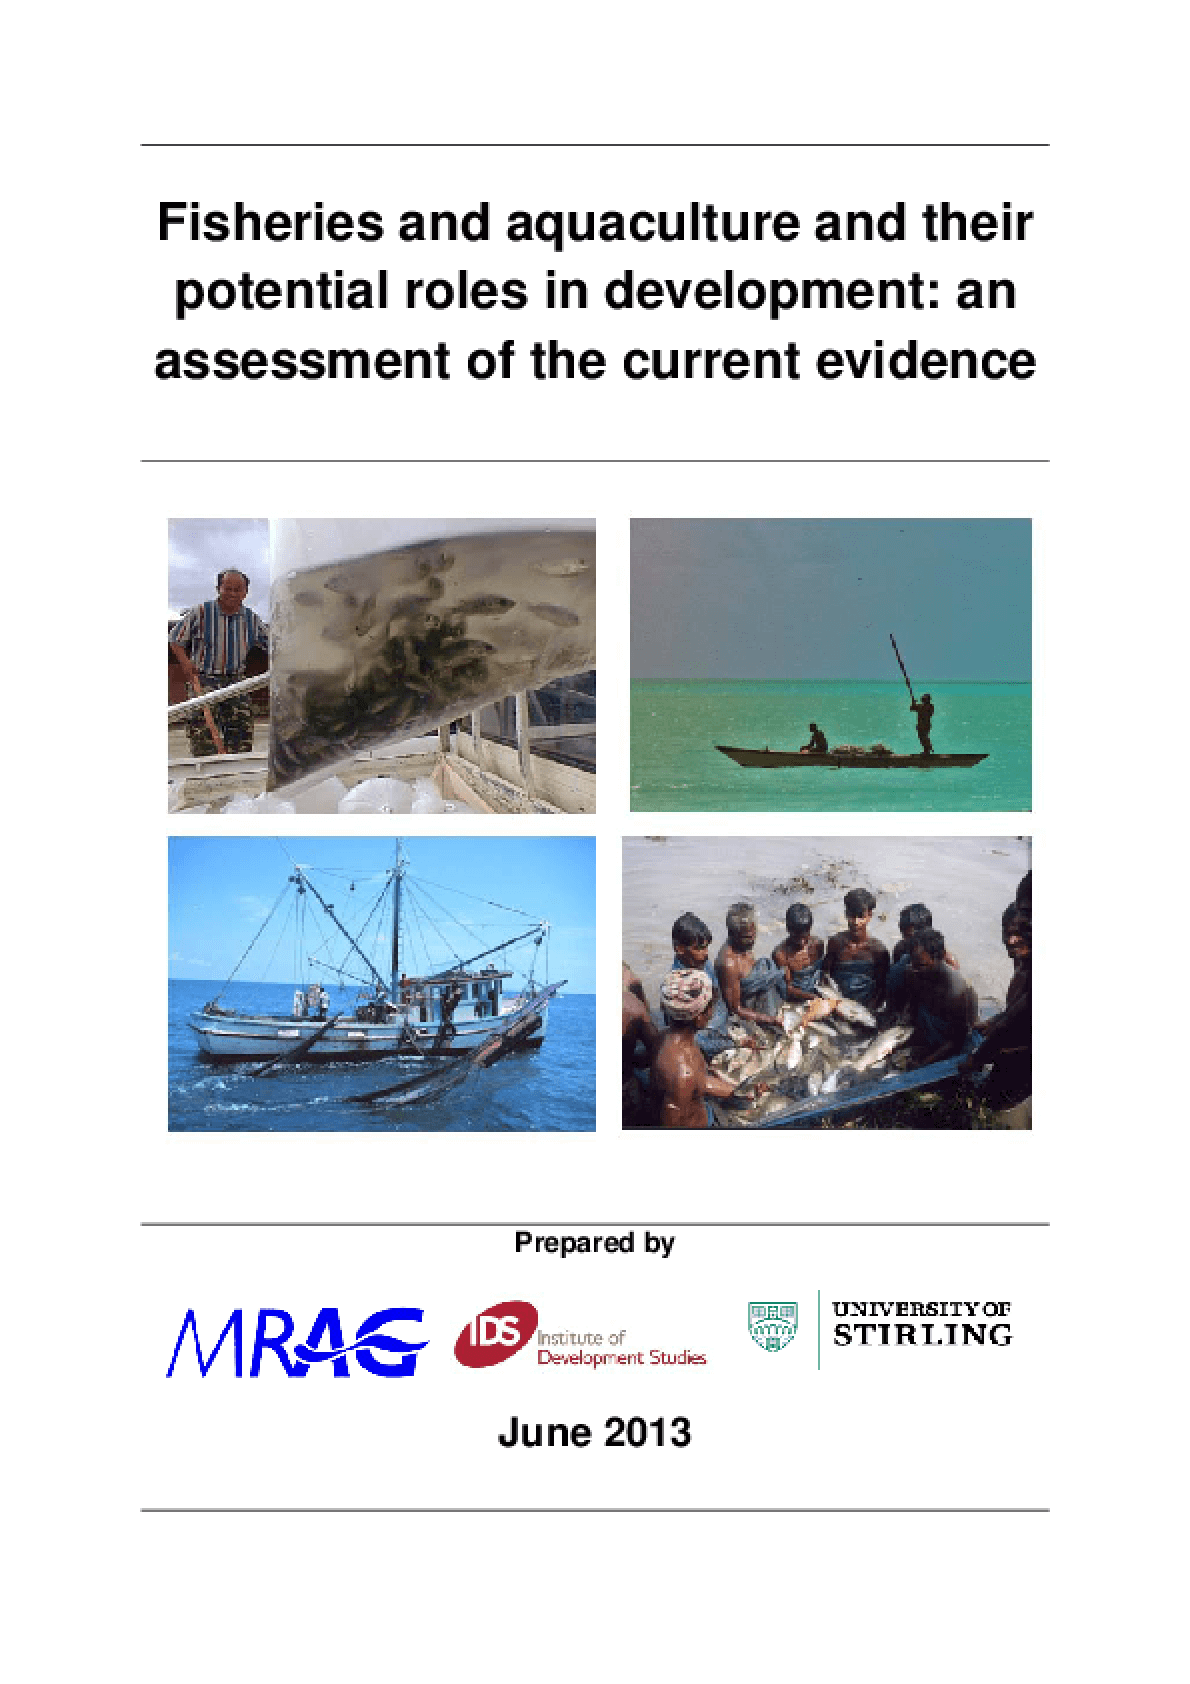 Fisheries and Aquaculture and Their Potential Roles in Development: An Assessment of the Current Evidence